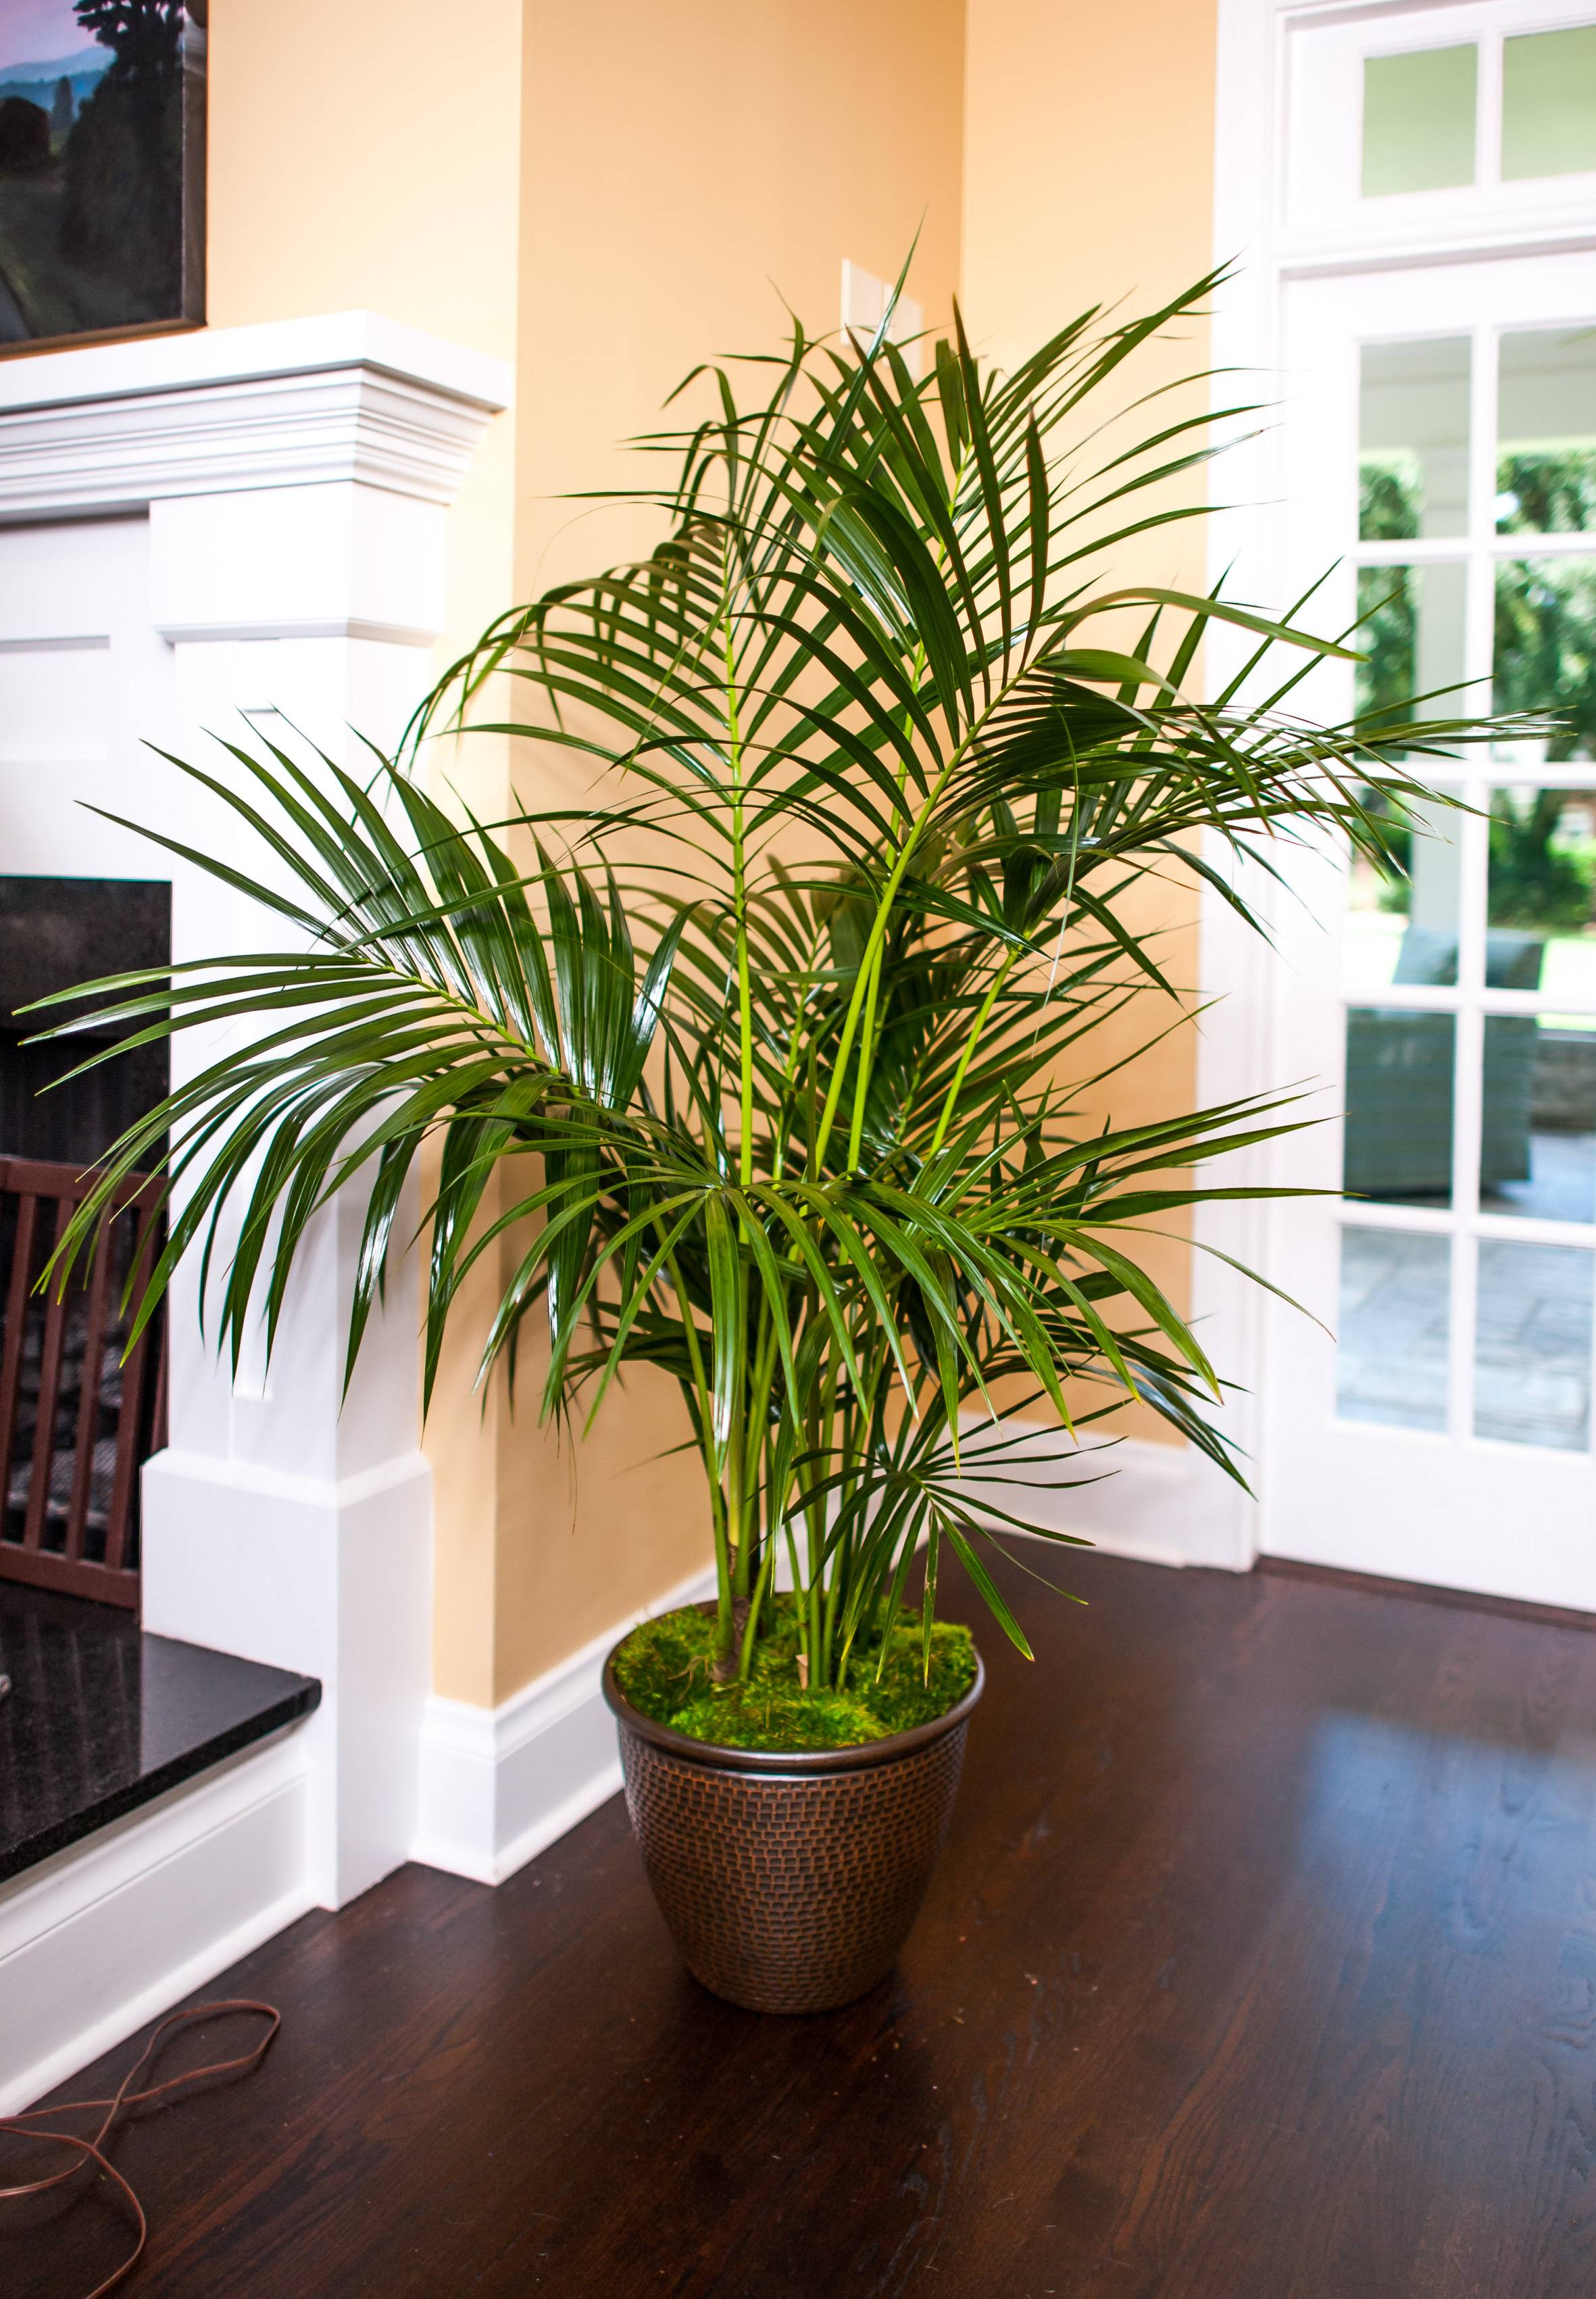 Big Plants For Living Room Kentia Palm Large Tropical Plant Shipped To Your Door